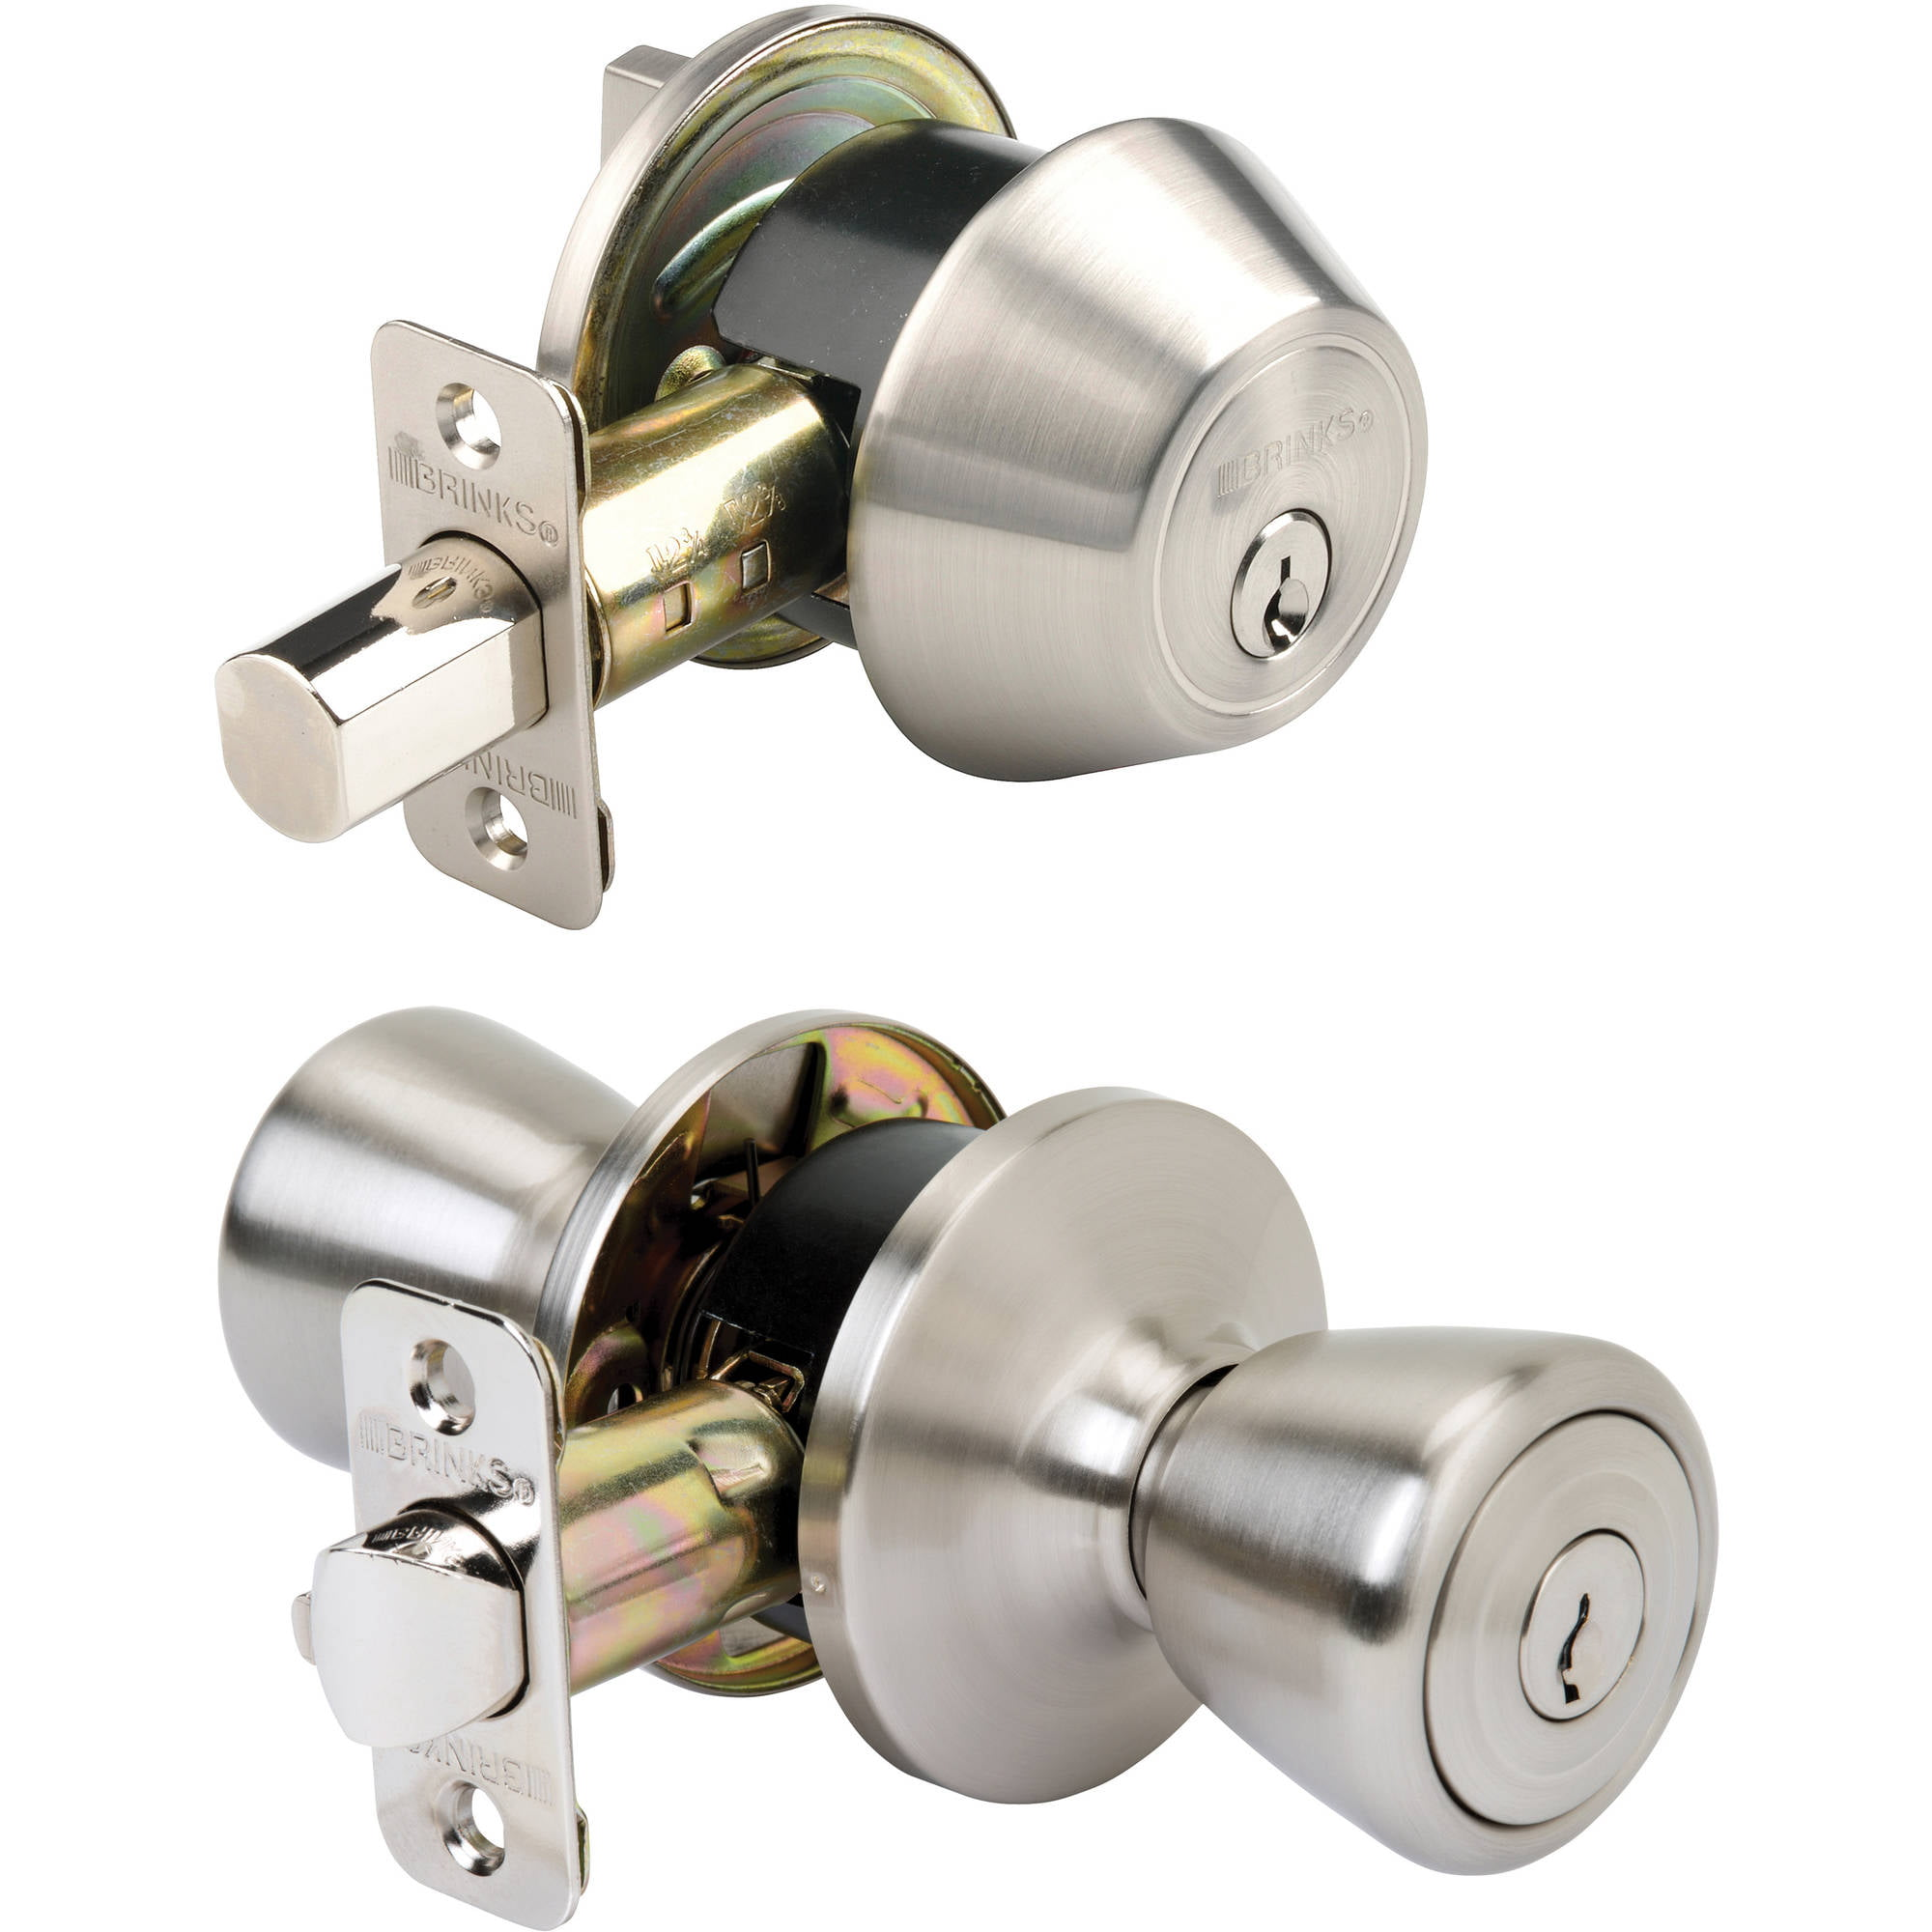 Door Locks - Walmart.com